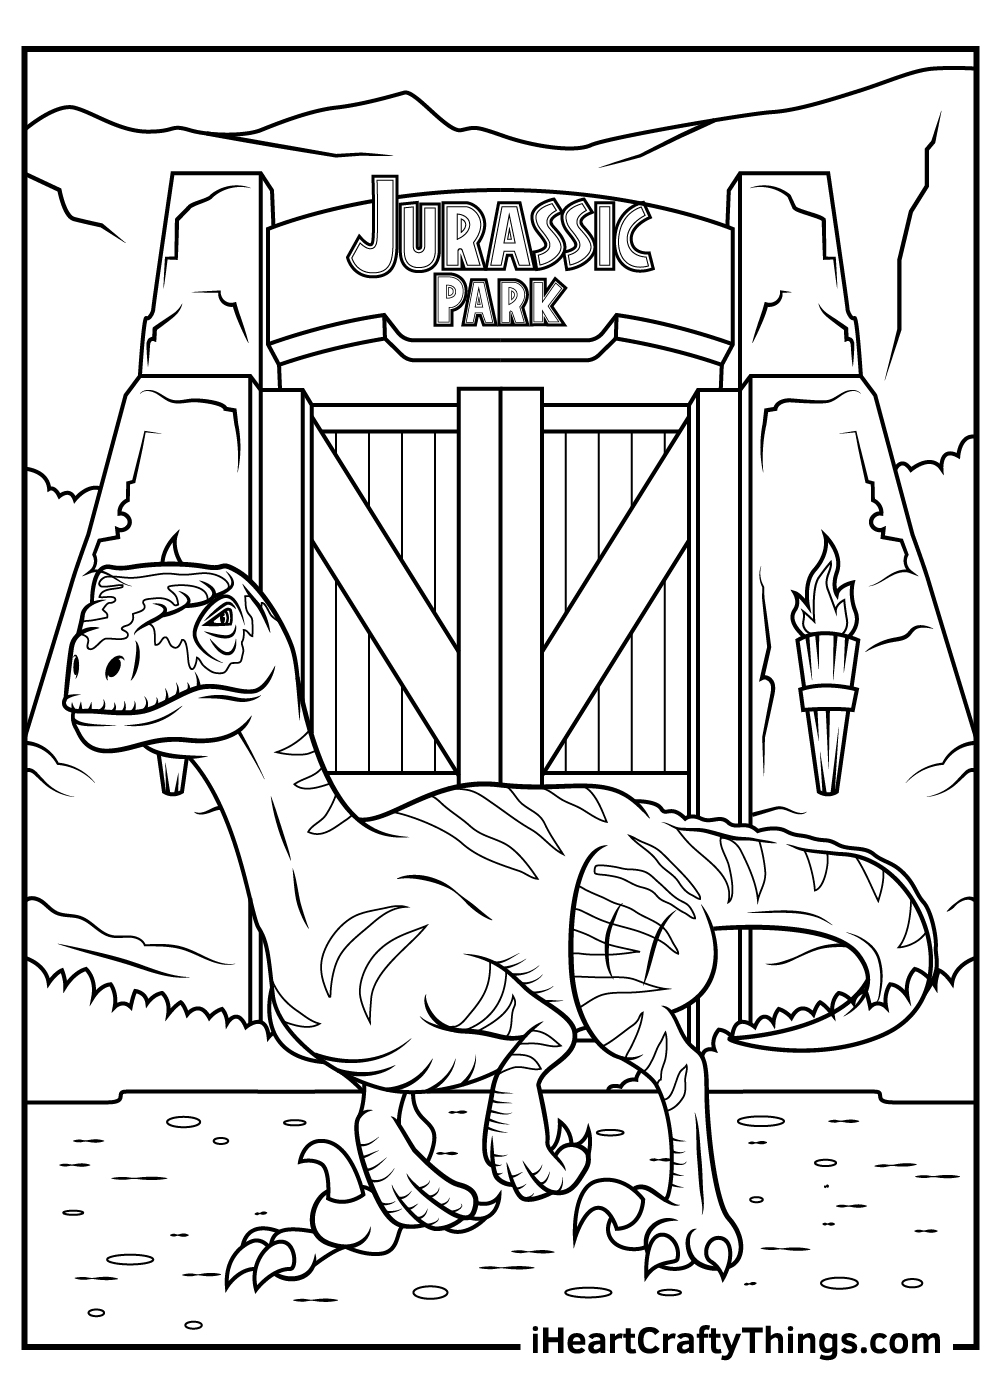 Printable Jurassic Park Coloring Pages Updated 2021